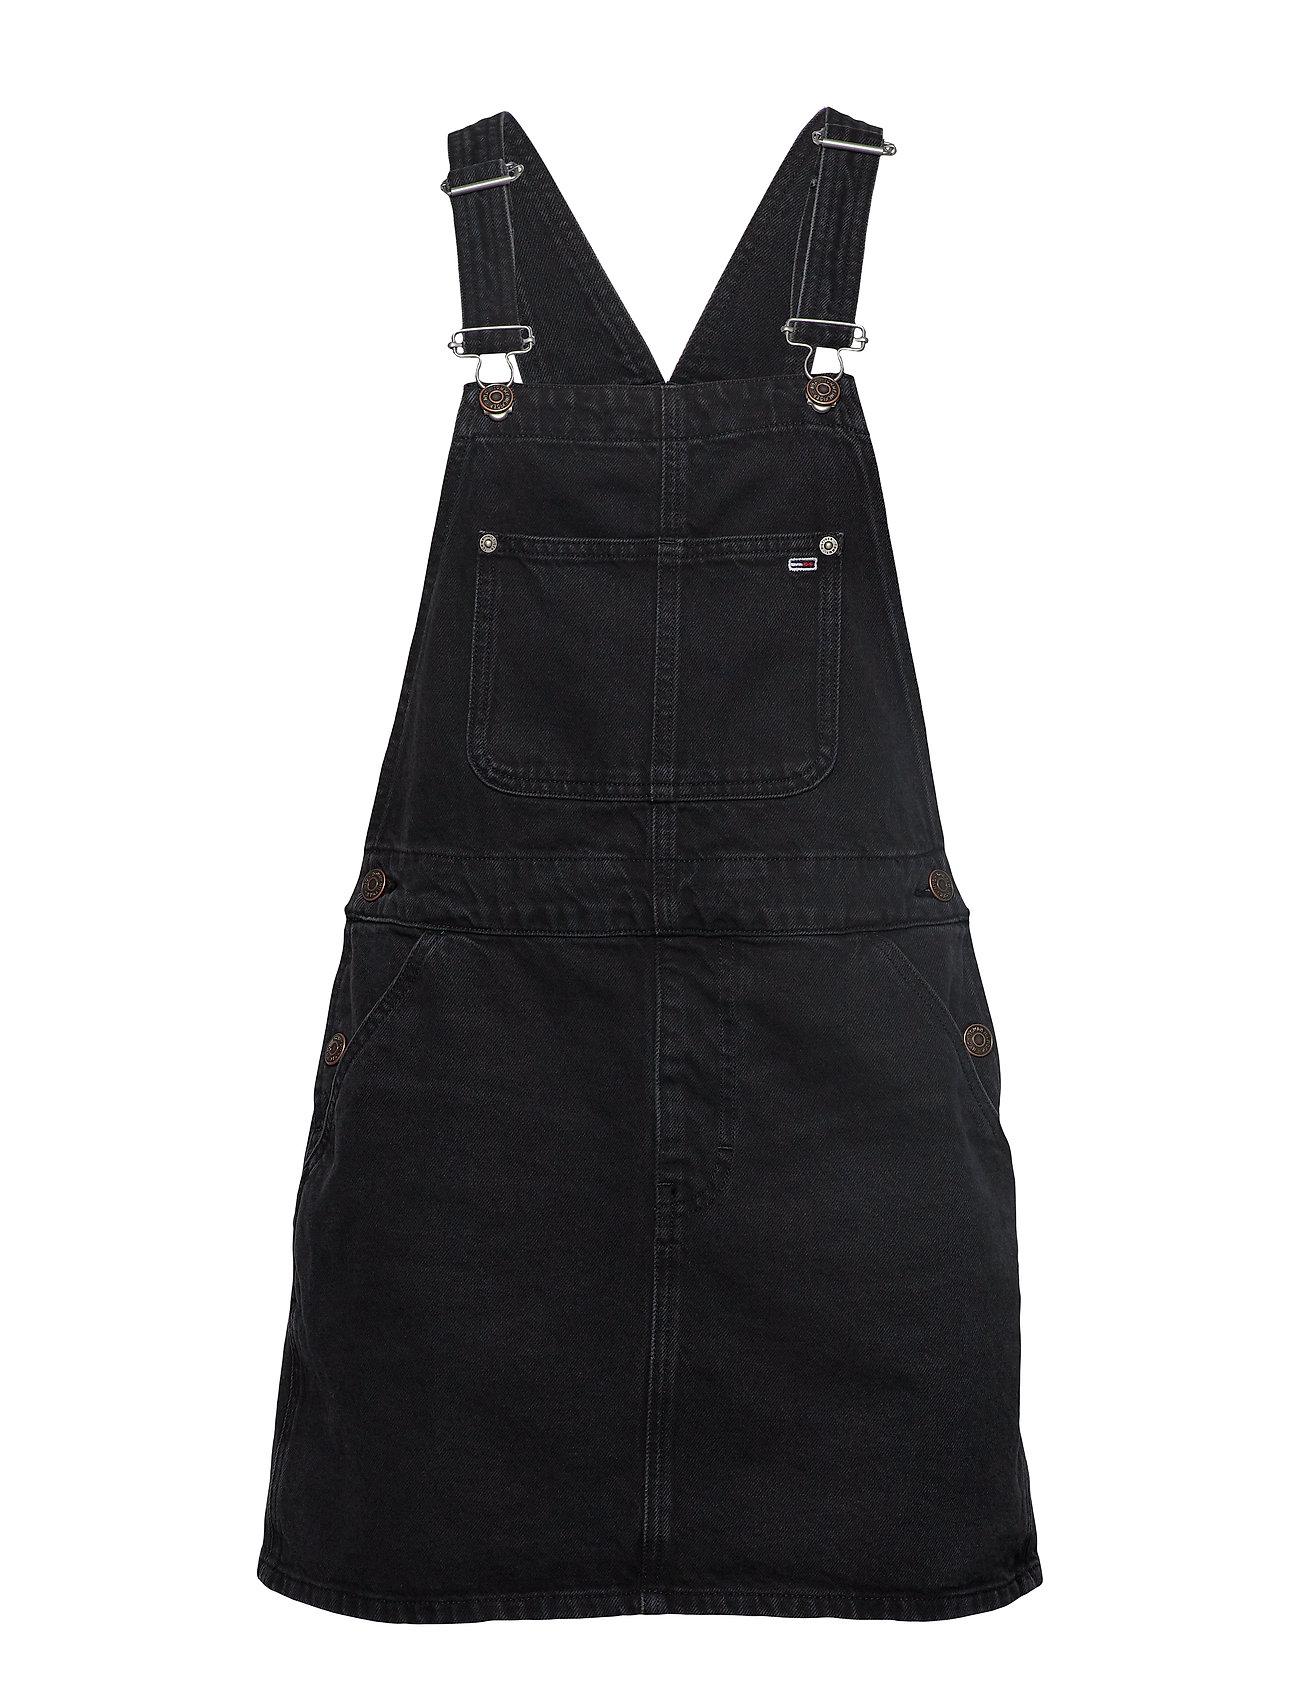 Tommy Jeans TJW DRESS DUNGAREE TJSVBK - TJ SAVE BK RIG